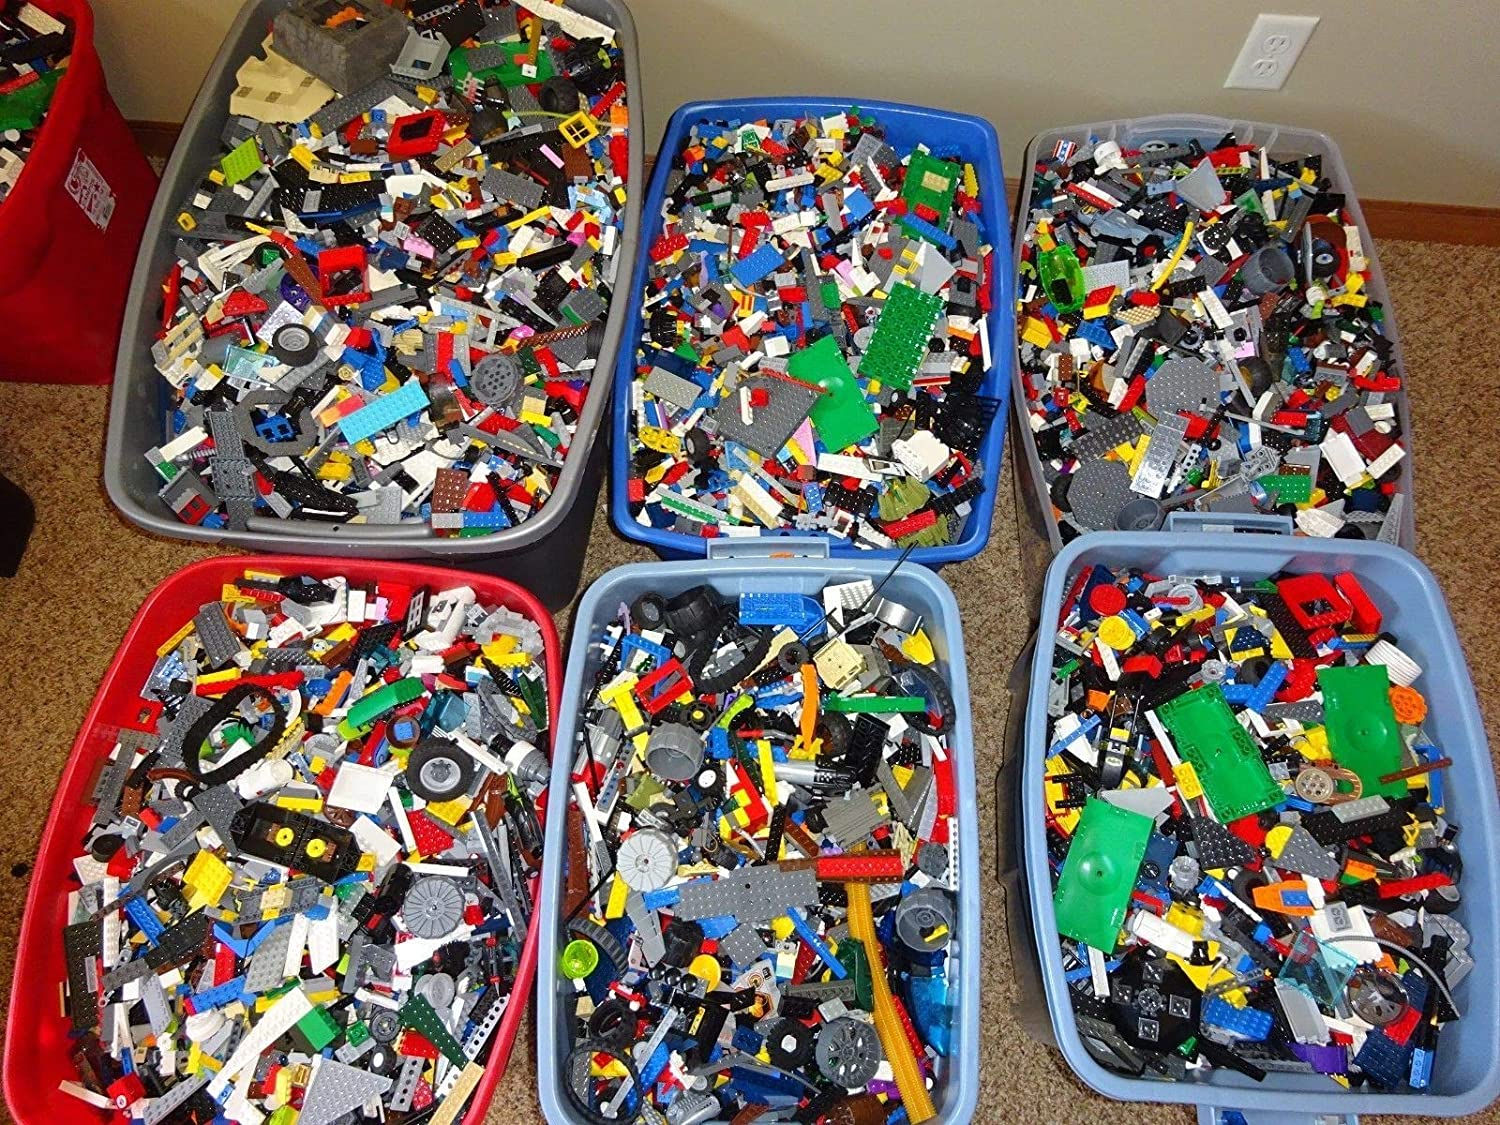 Lego LBS Parts /& Pieces HUGE BULK LOT Bricks Blocks Star Wars City Legos Pound